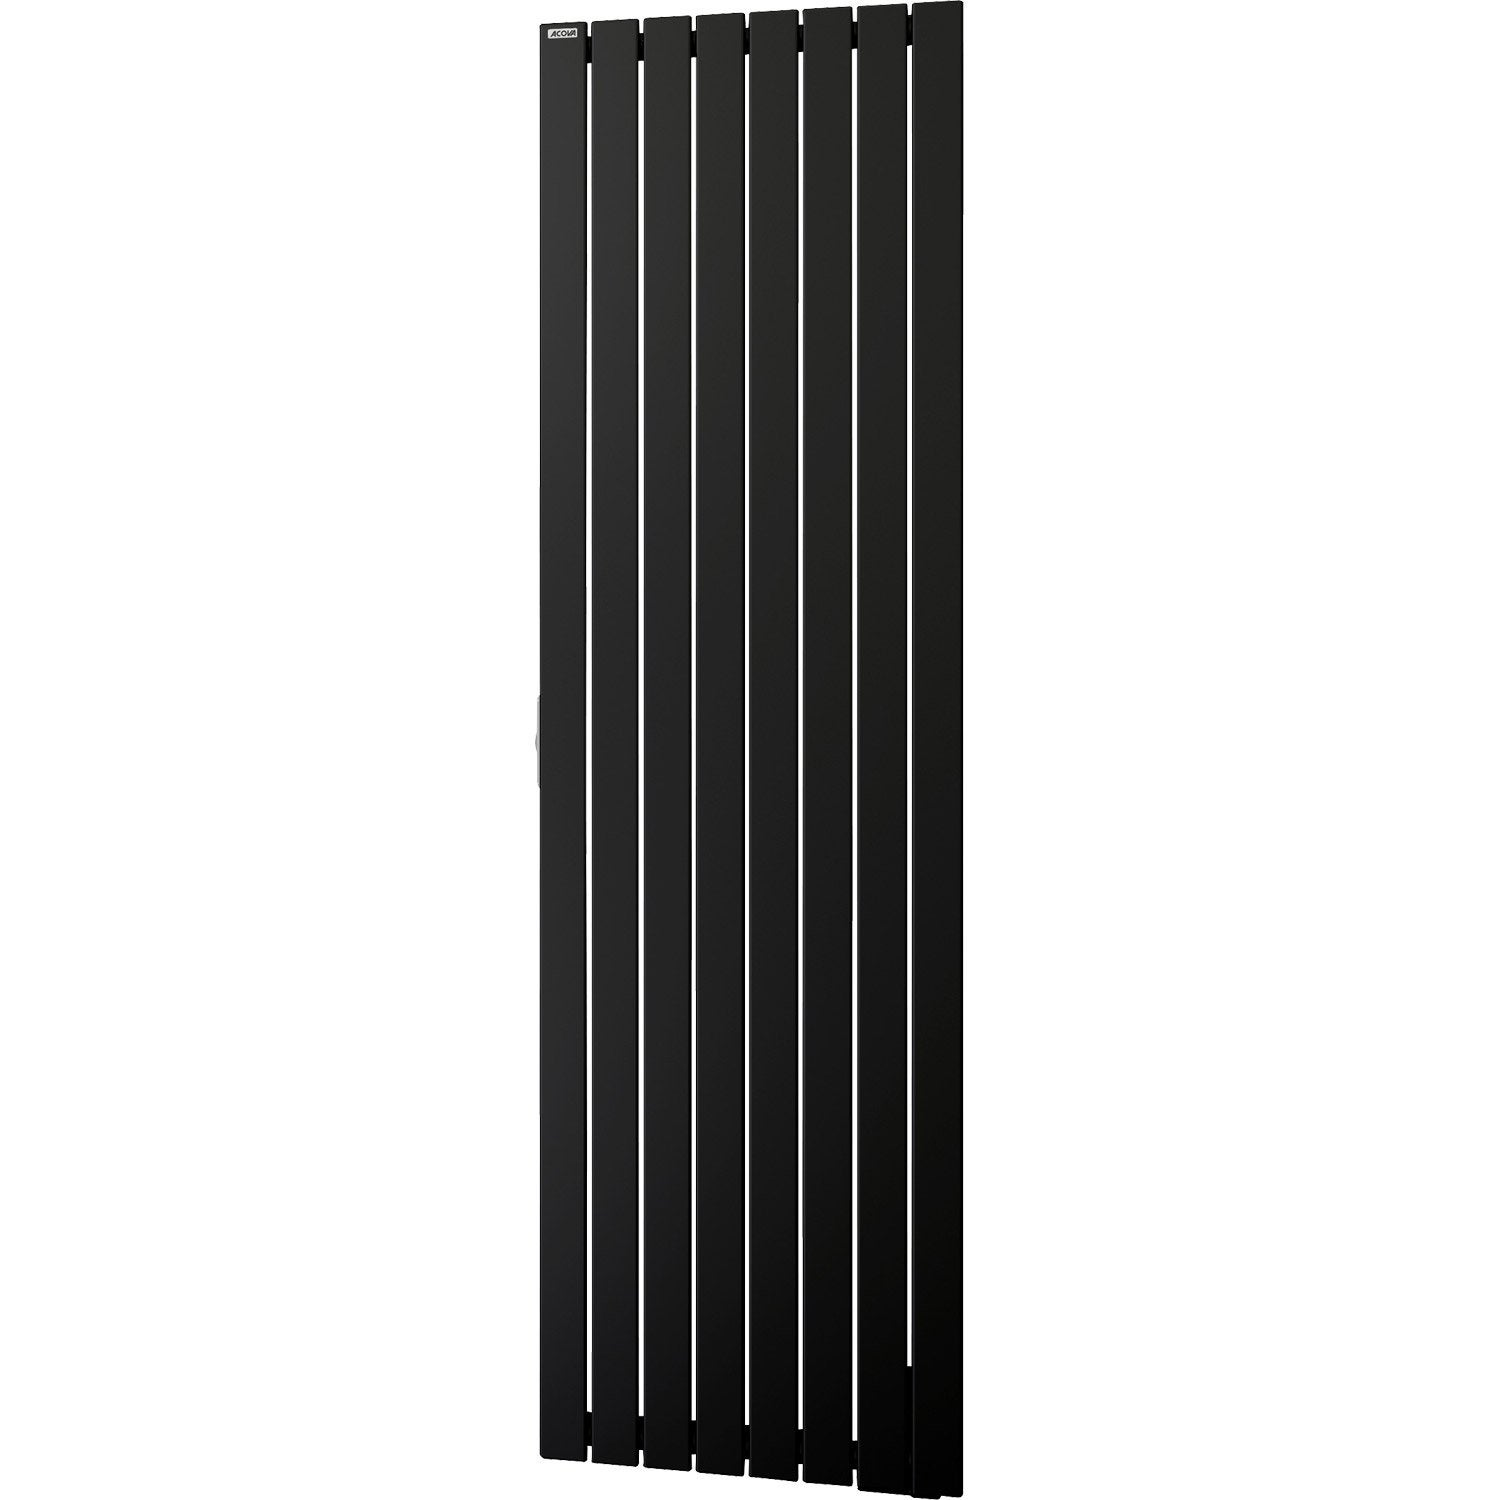 radiateur lectrique inertie fluide acova 080006352 1000 w leroy merlin. Black Bedroom Furniture Sets. Home Design Ideas